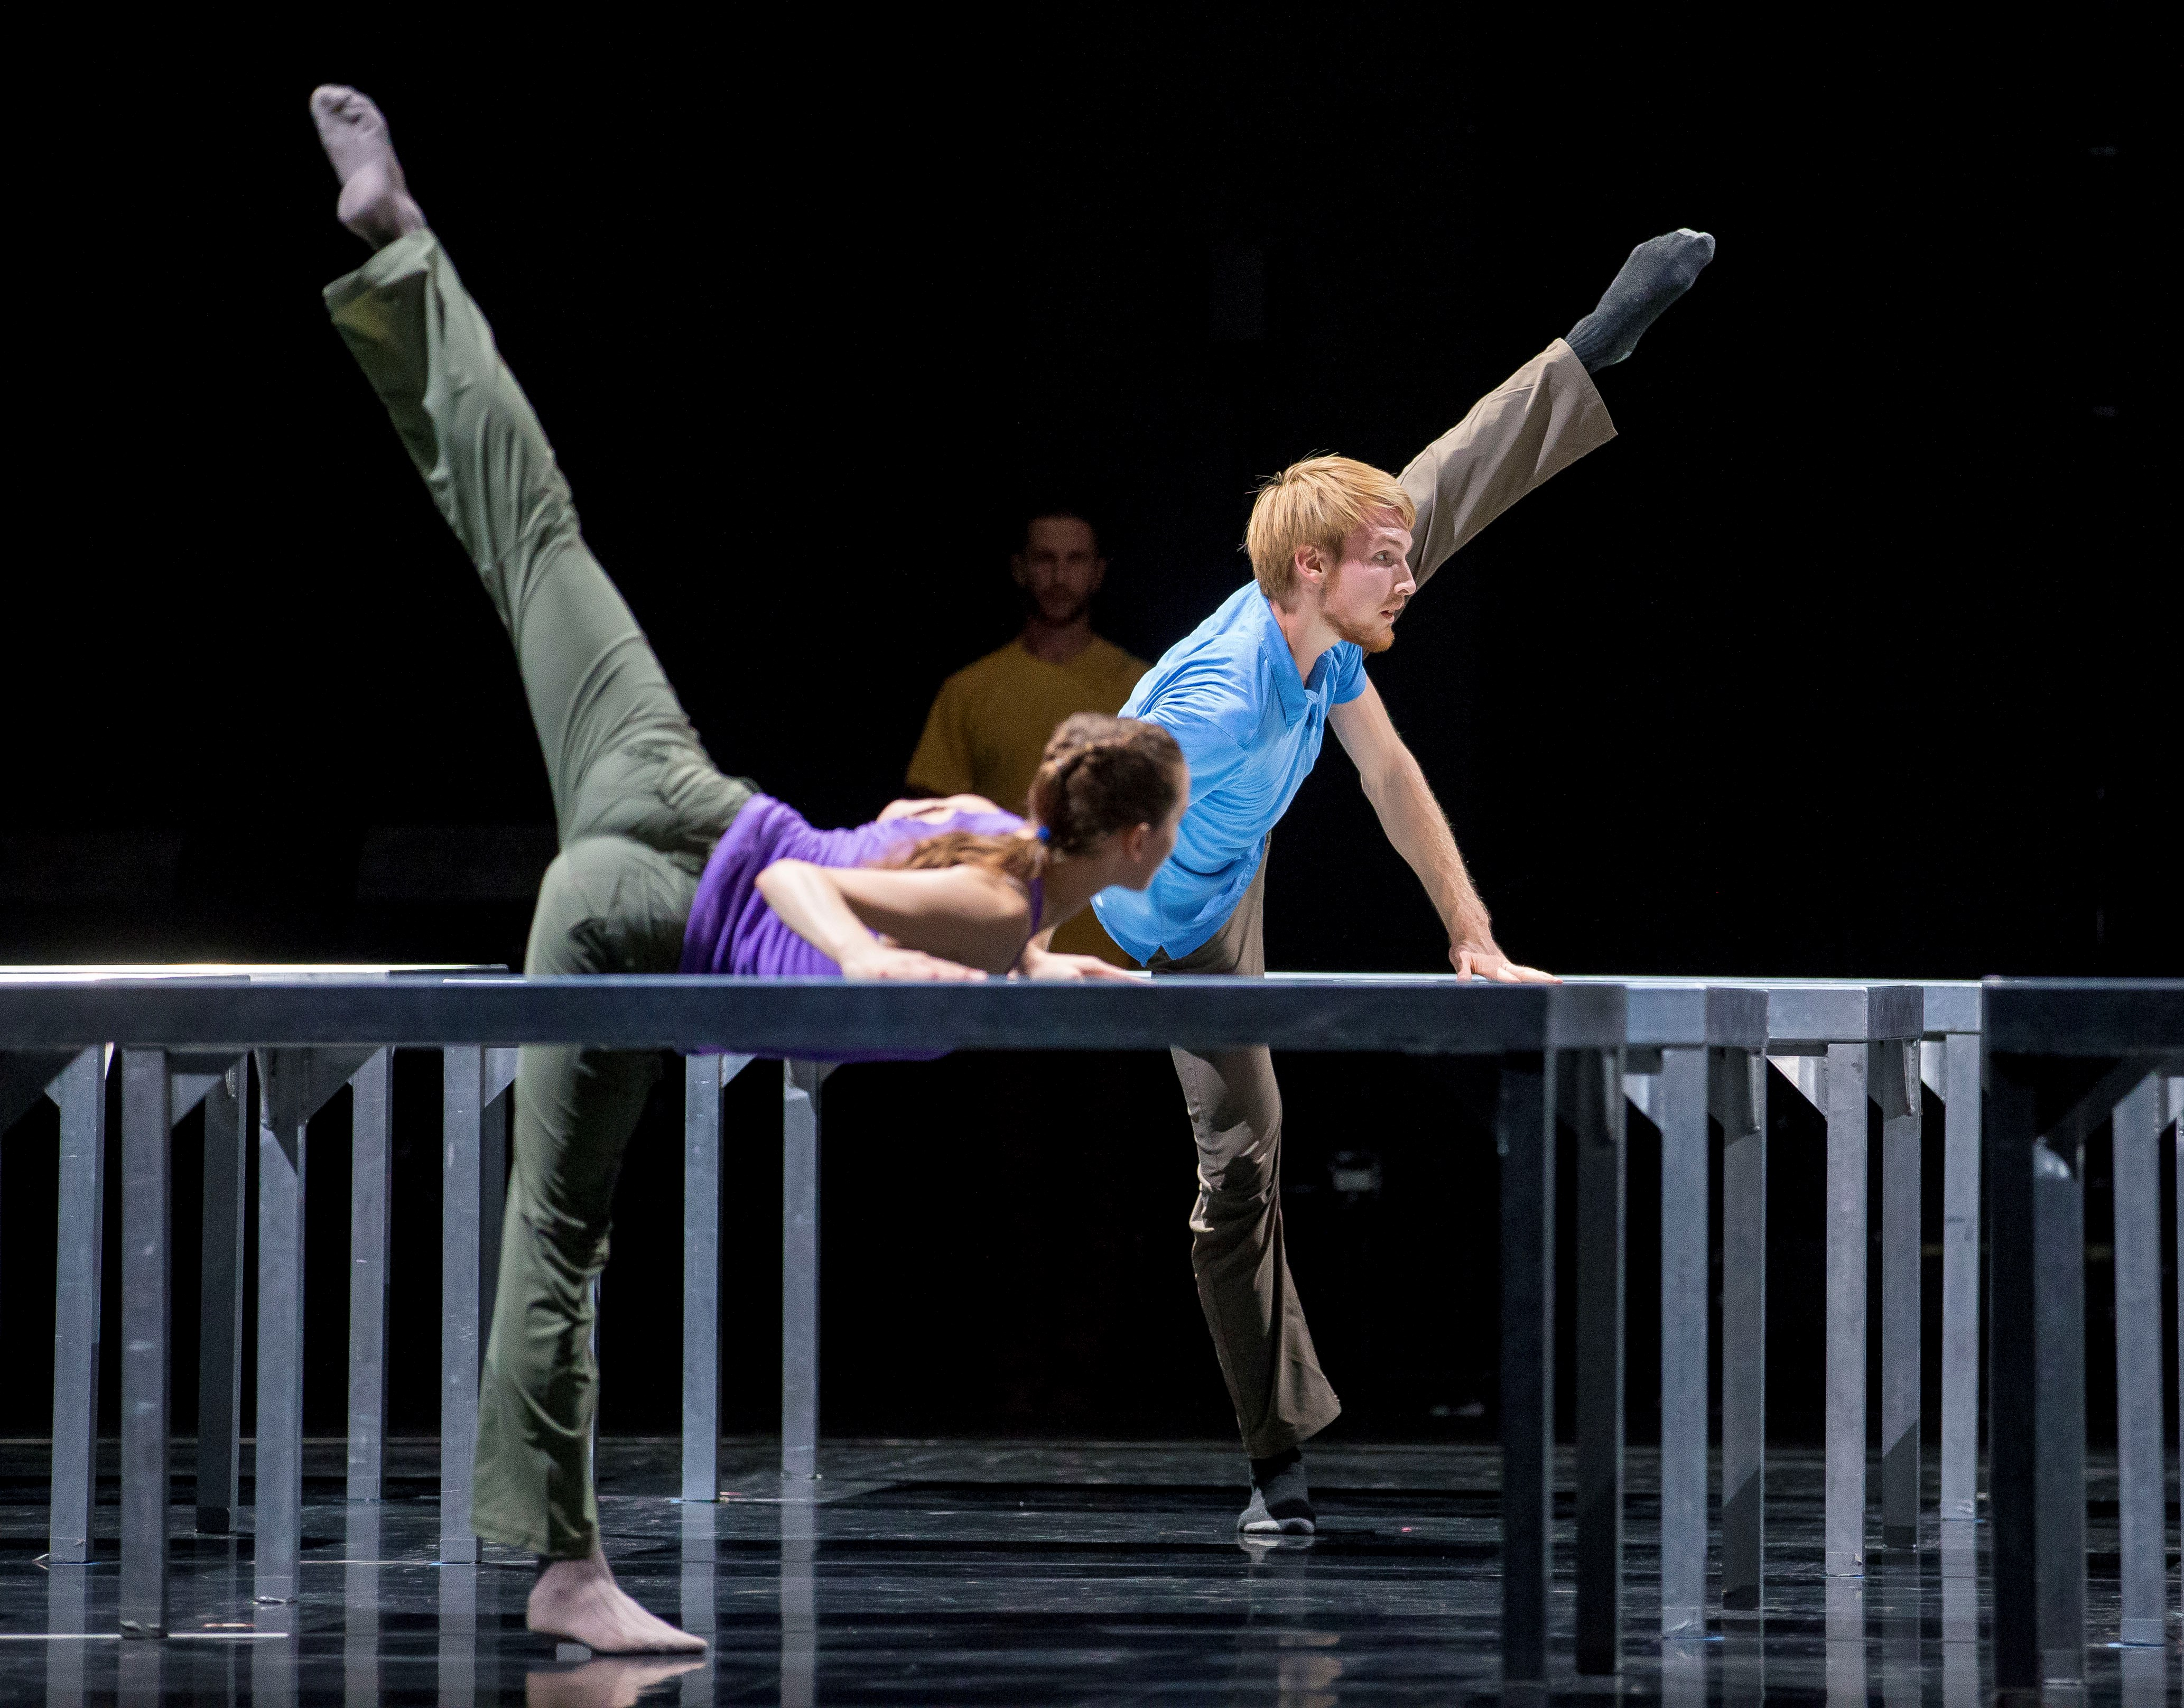 Florian Lochner in William Forsythe's One Flat Thing, reproduced